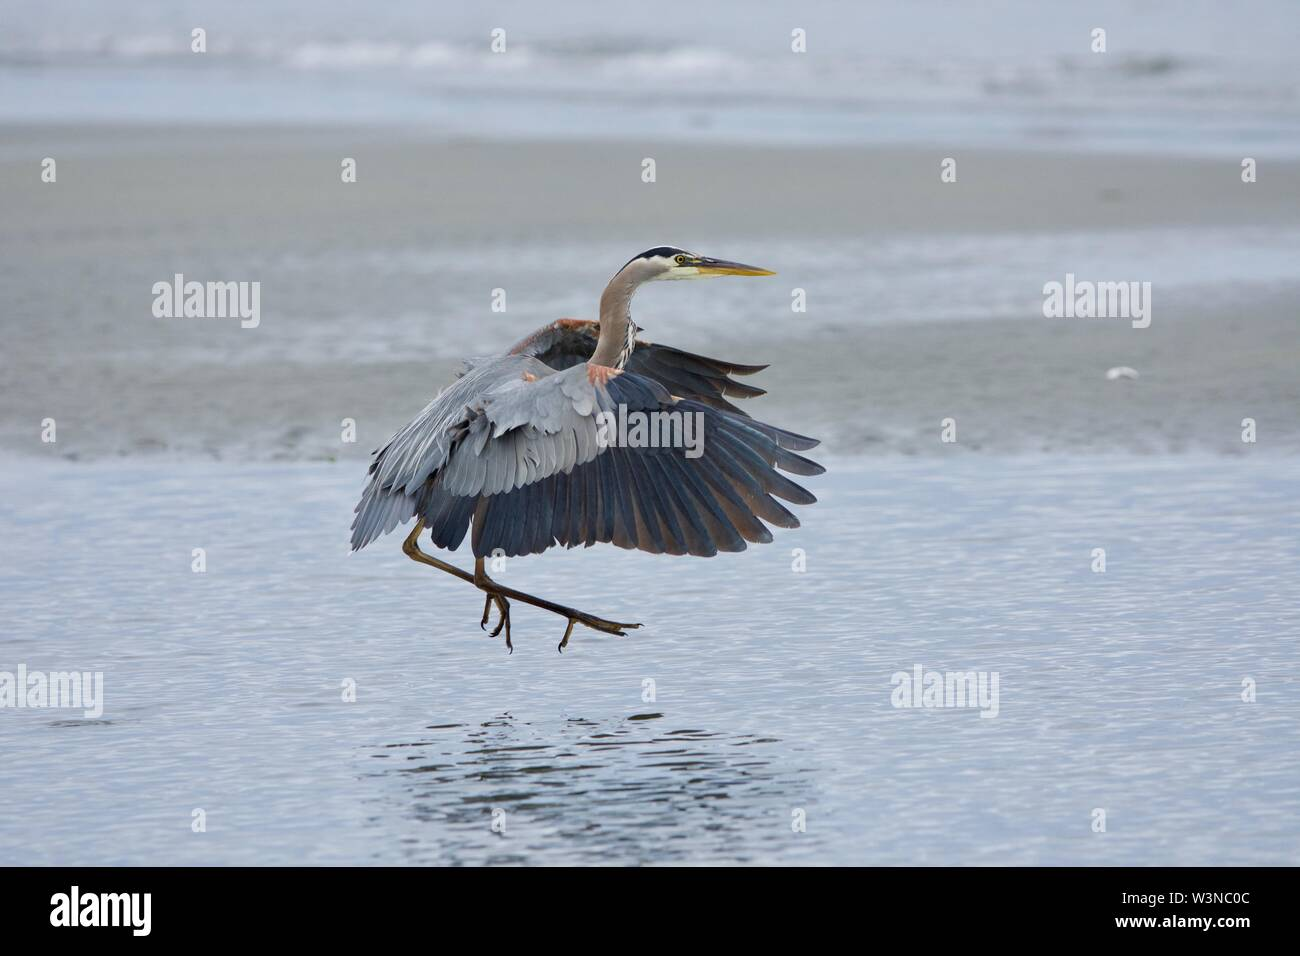 Great blue heron sweeps its wings forward as it touches down in a tide pool, Witty's Lagoon, Vancouver Island, British Columbia. - Stock Image